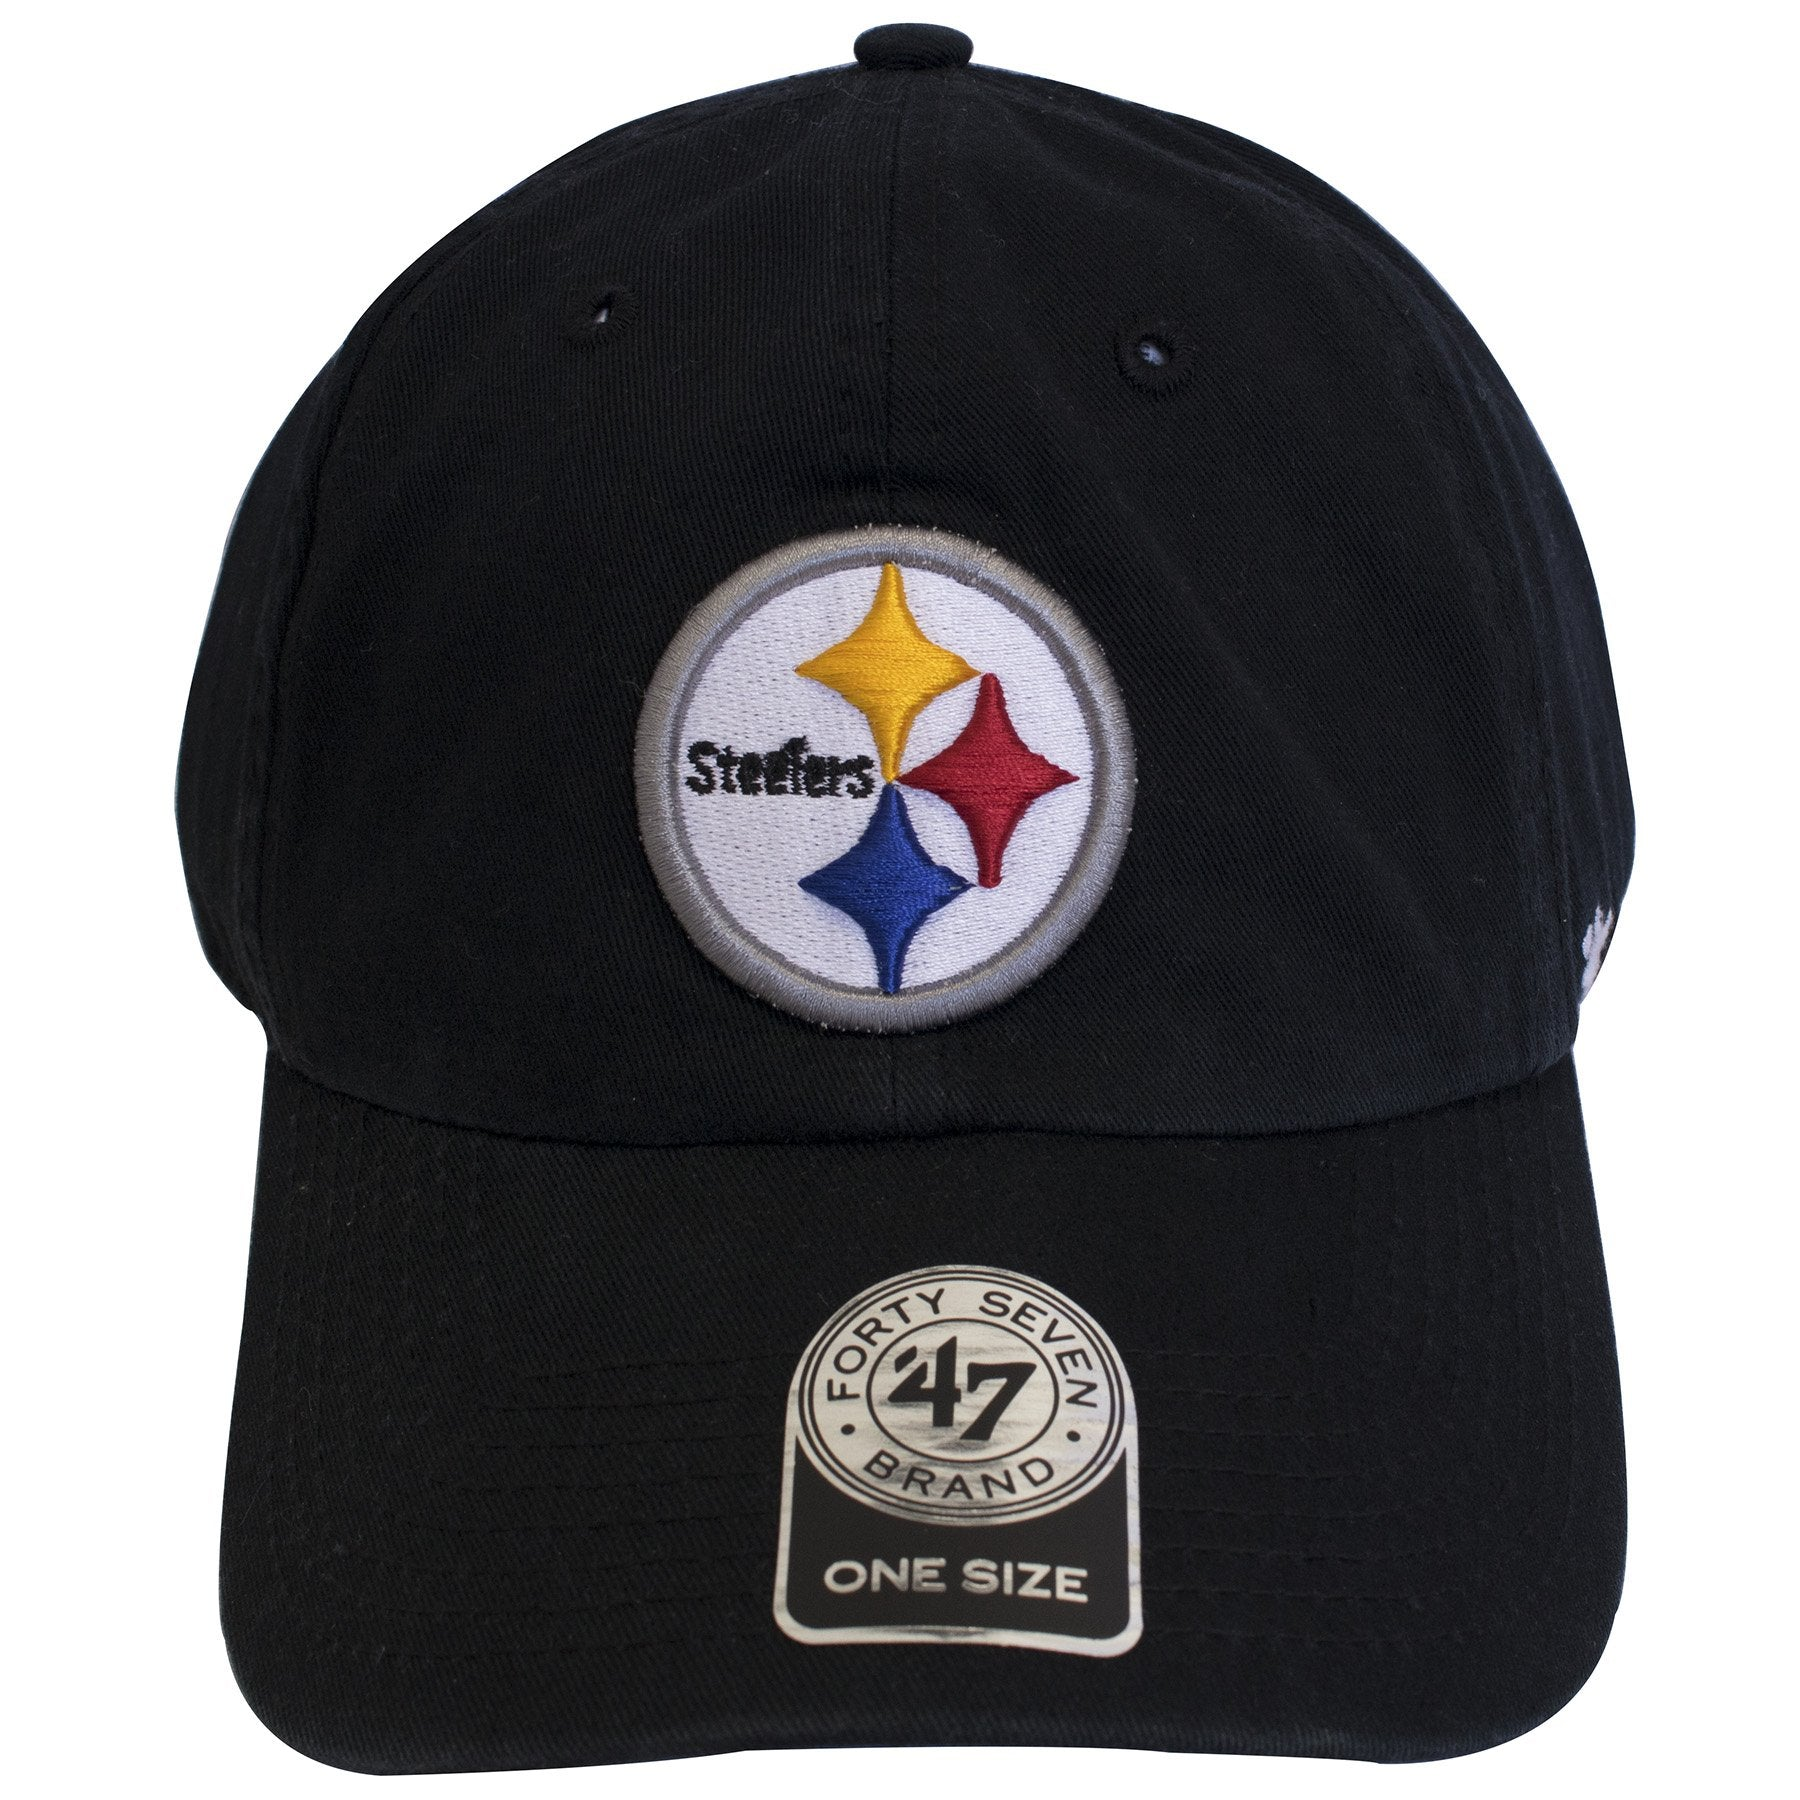 on the front of the Pittsburgh Steelers black adjustable dad hat is a  Pittsburgh Steelers logo b75e6564519c